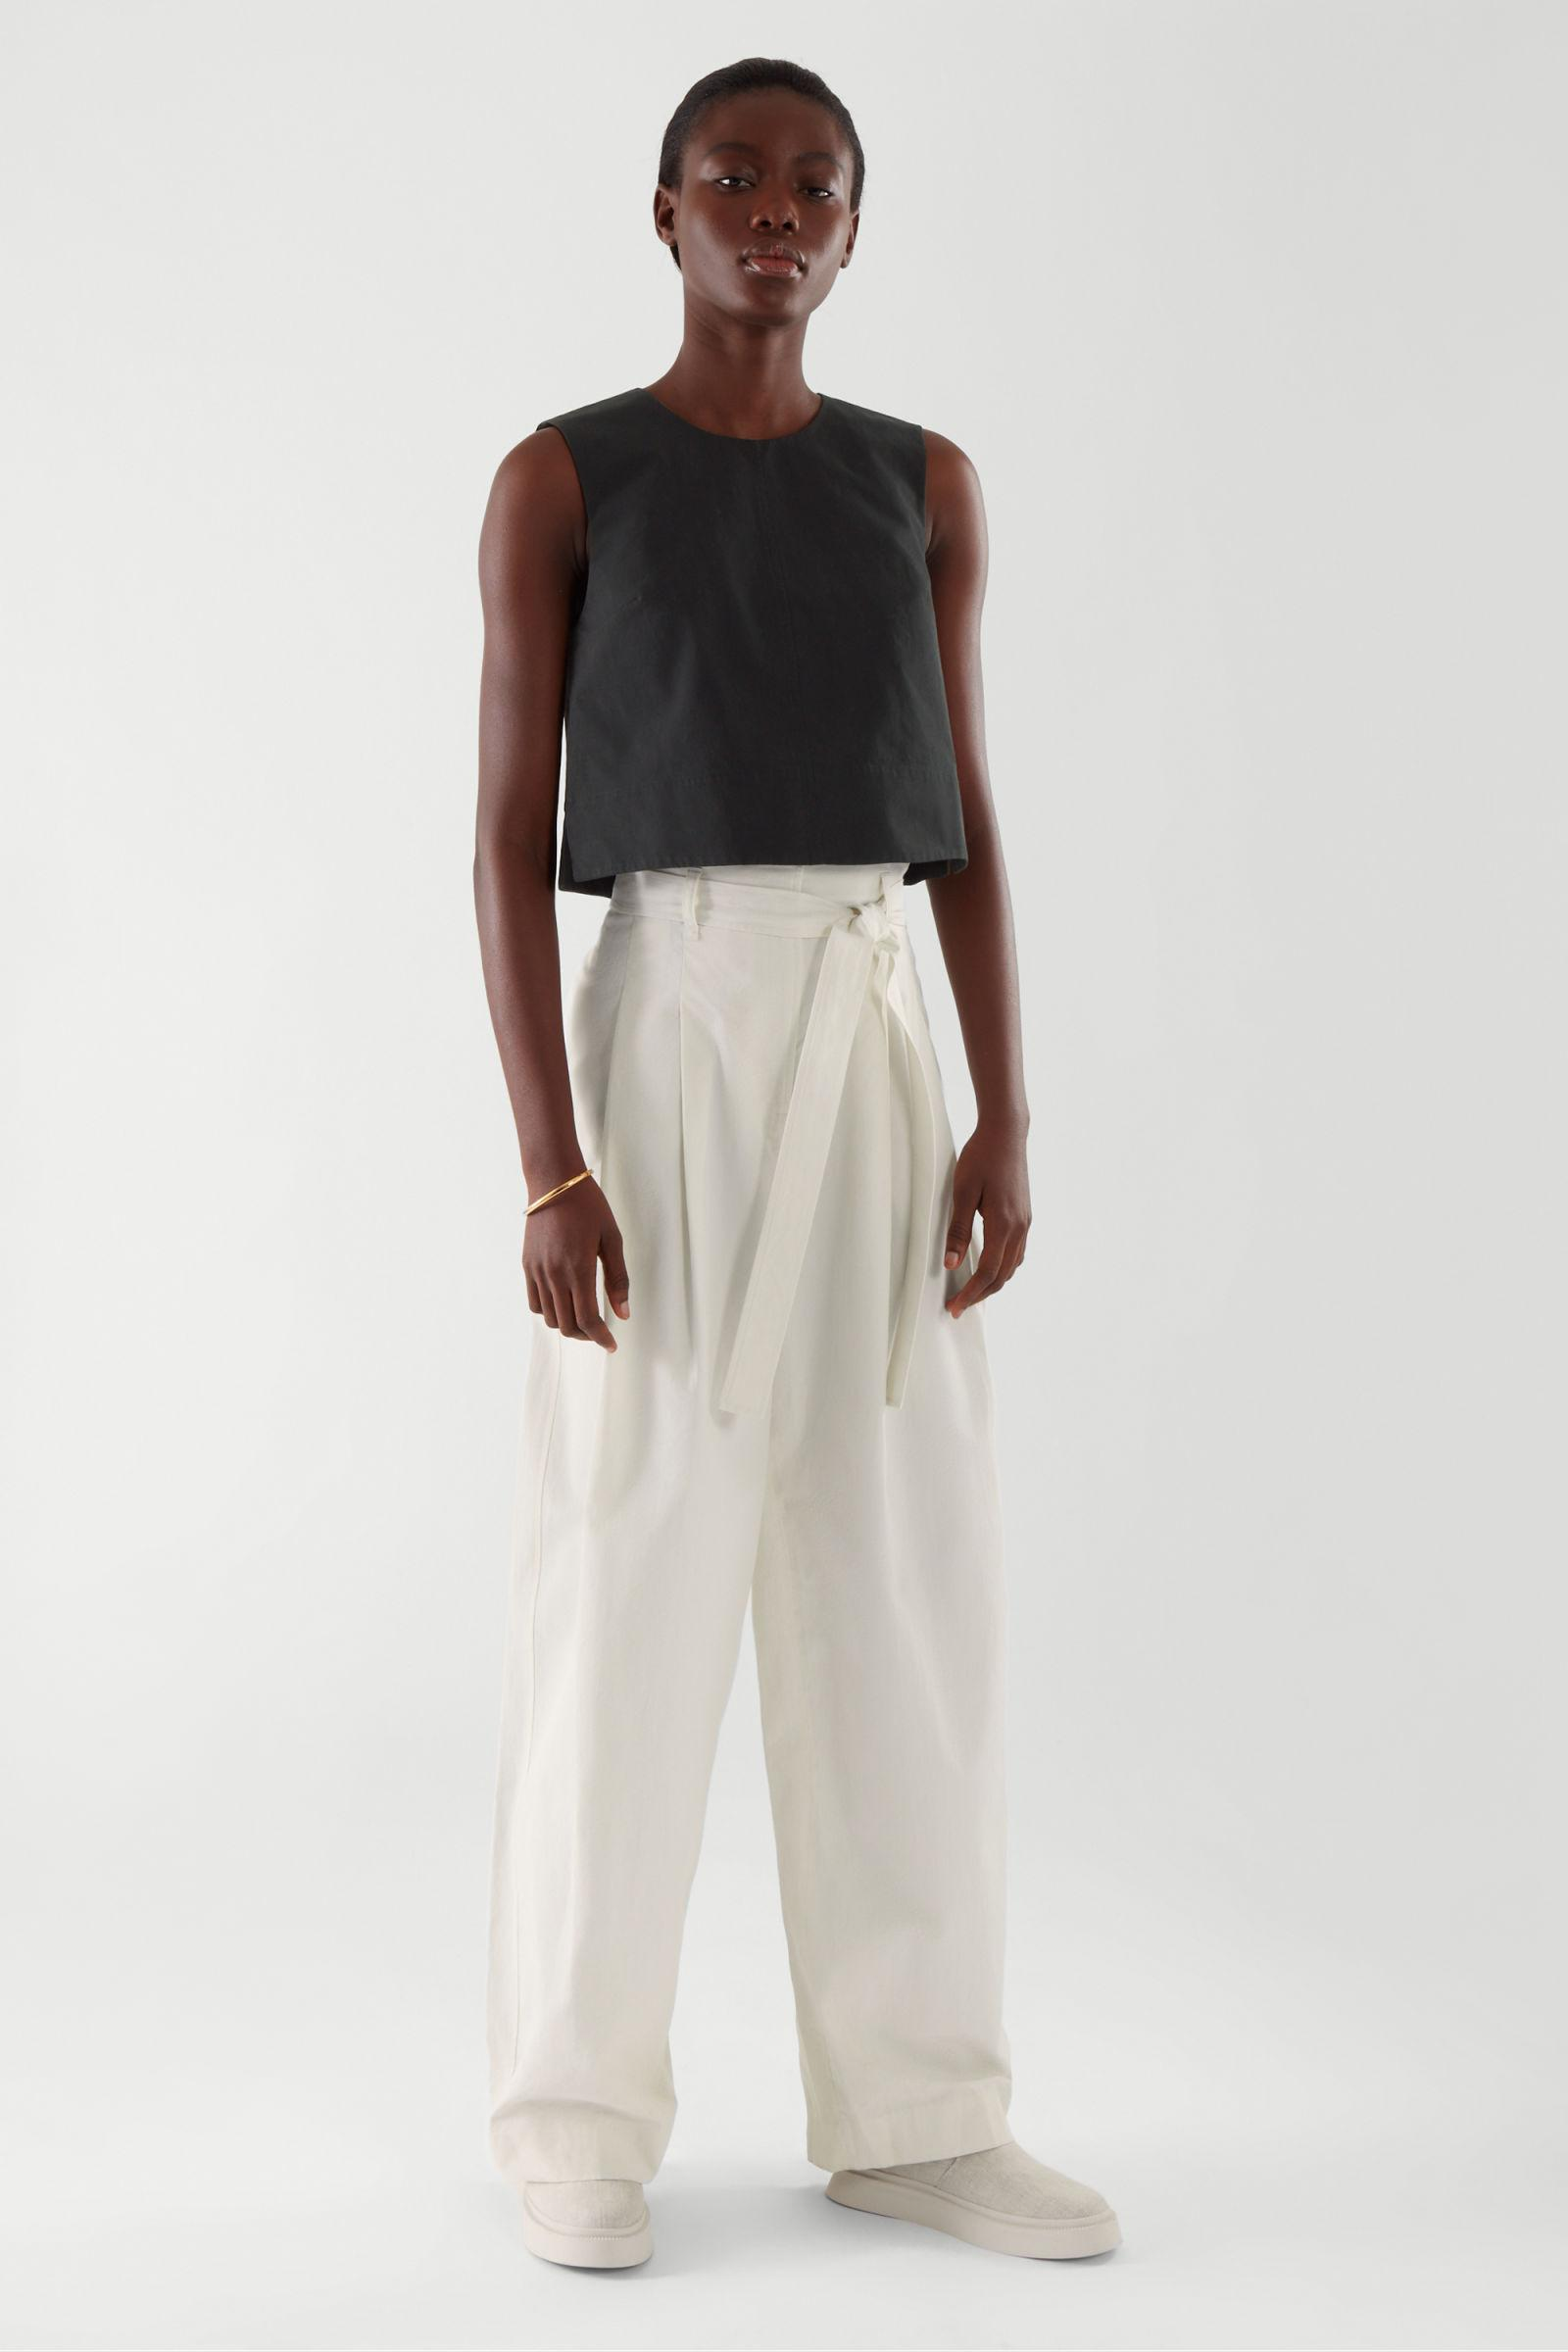 A-LINE CROPPED TOP